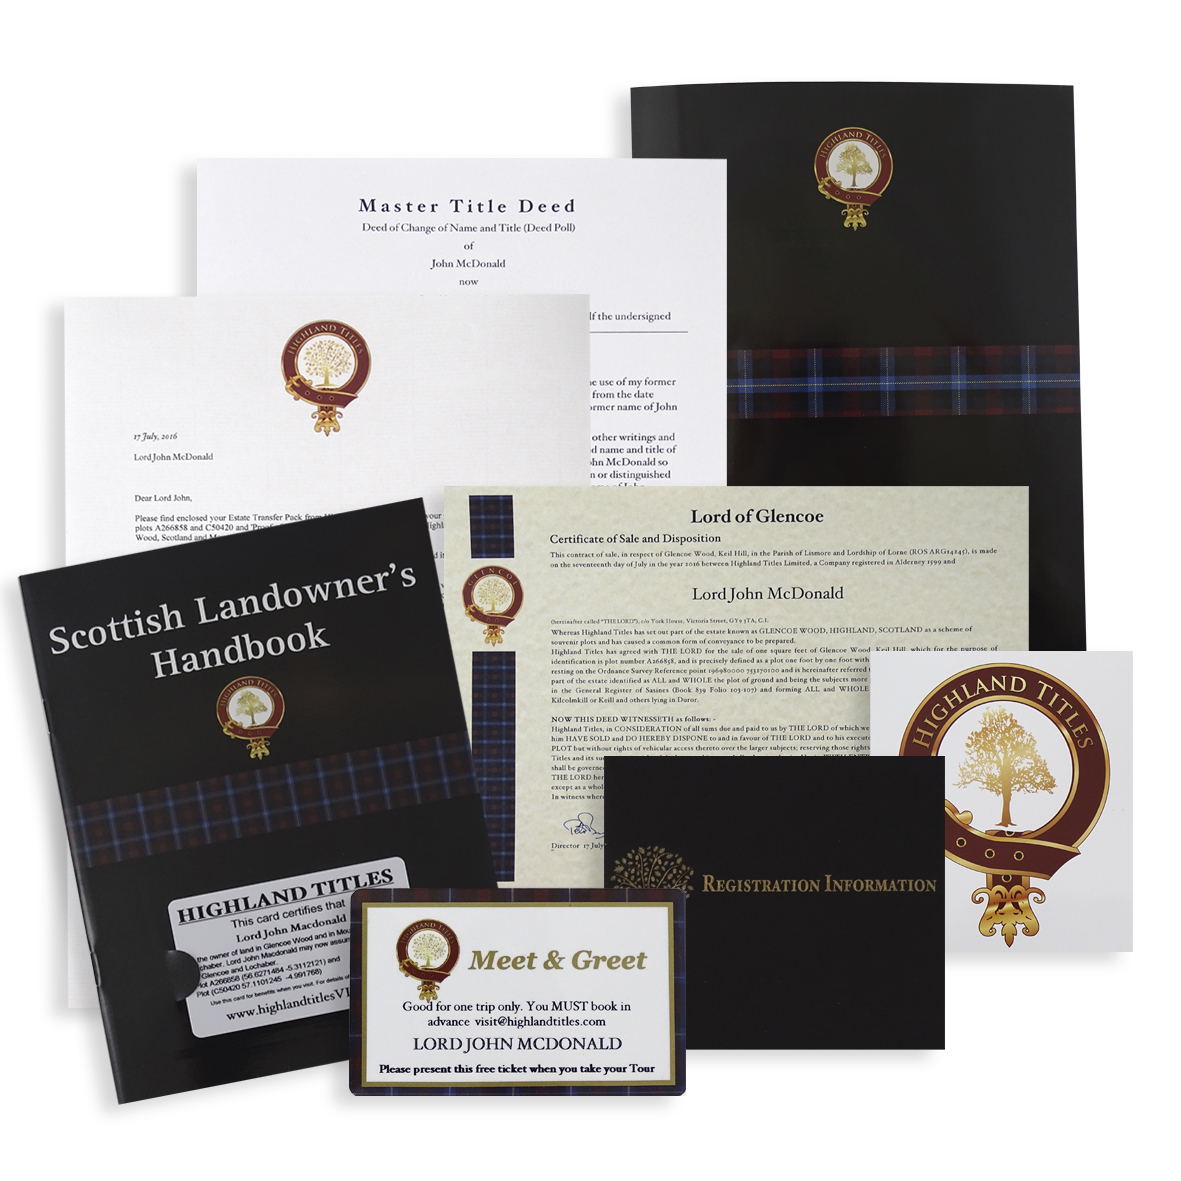 Become a Laird, Lord or Lady of Glencoe Package 1